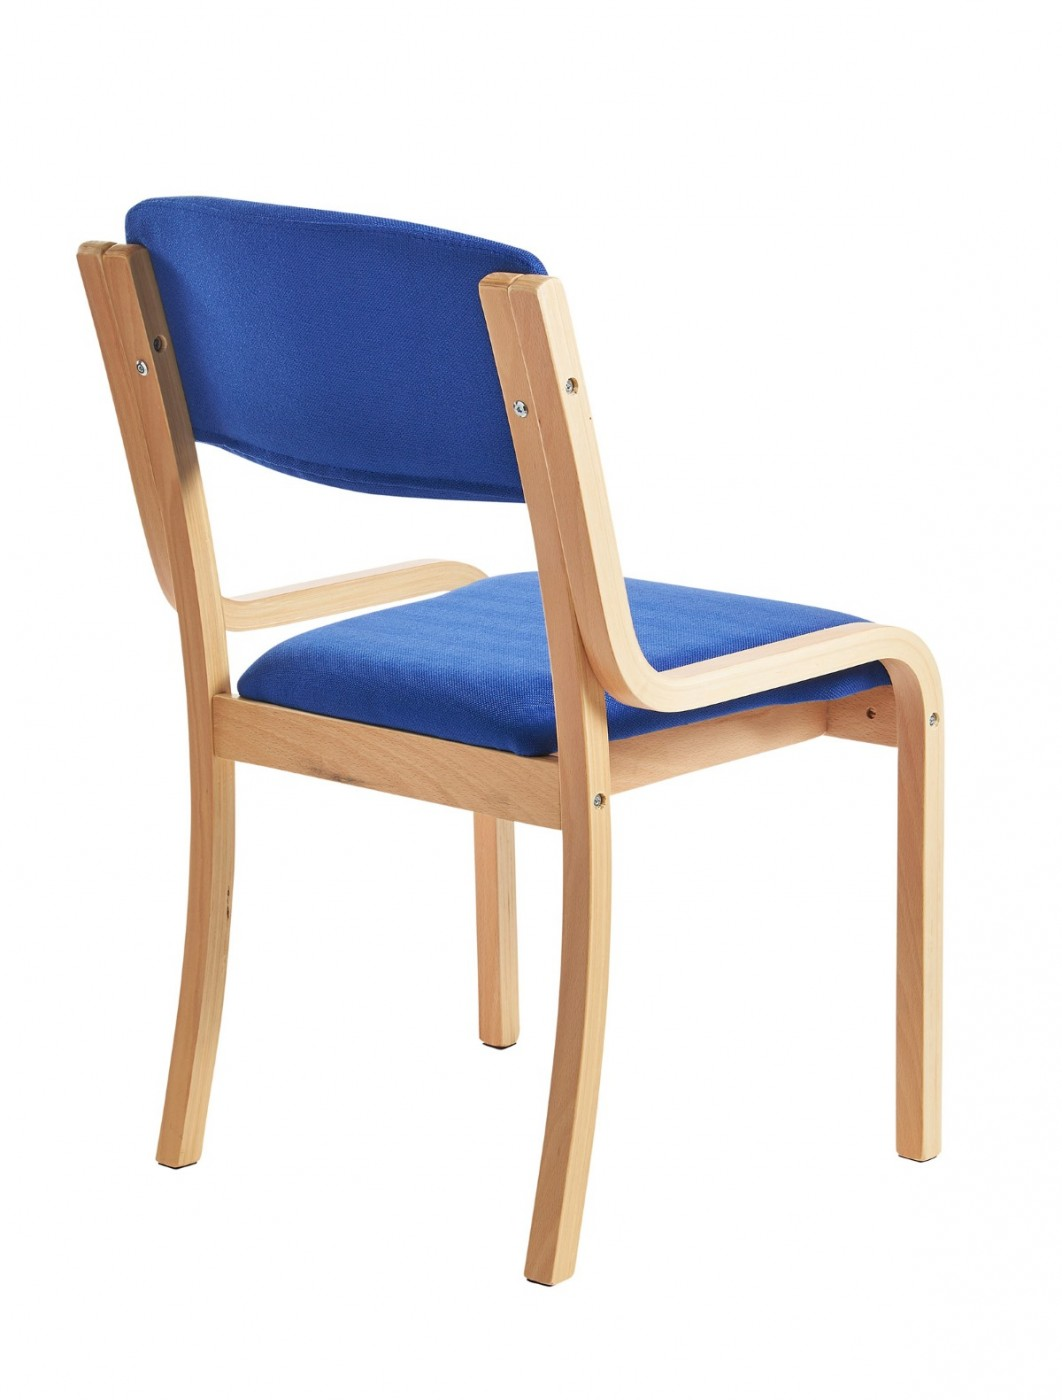 wooden chair frames for upholstery uk tennis court umpire chairs reception seating dams prague stacking pra50002